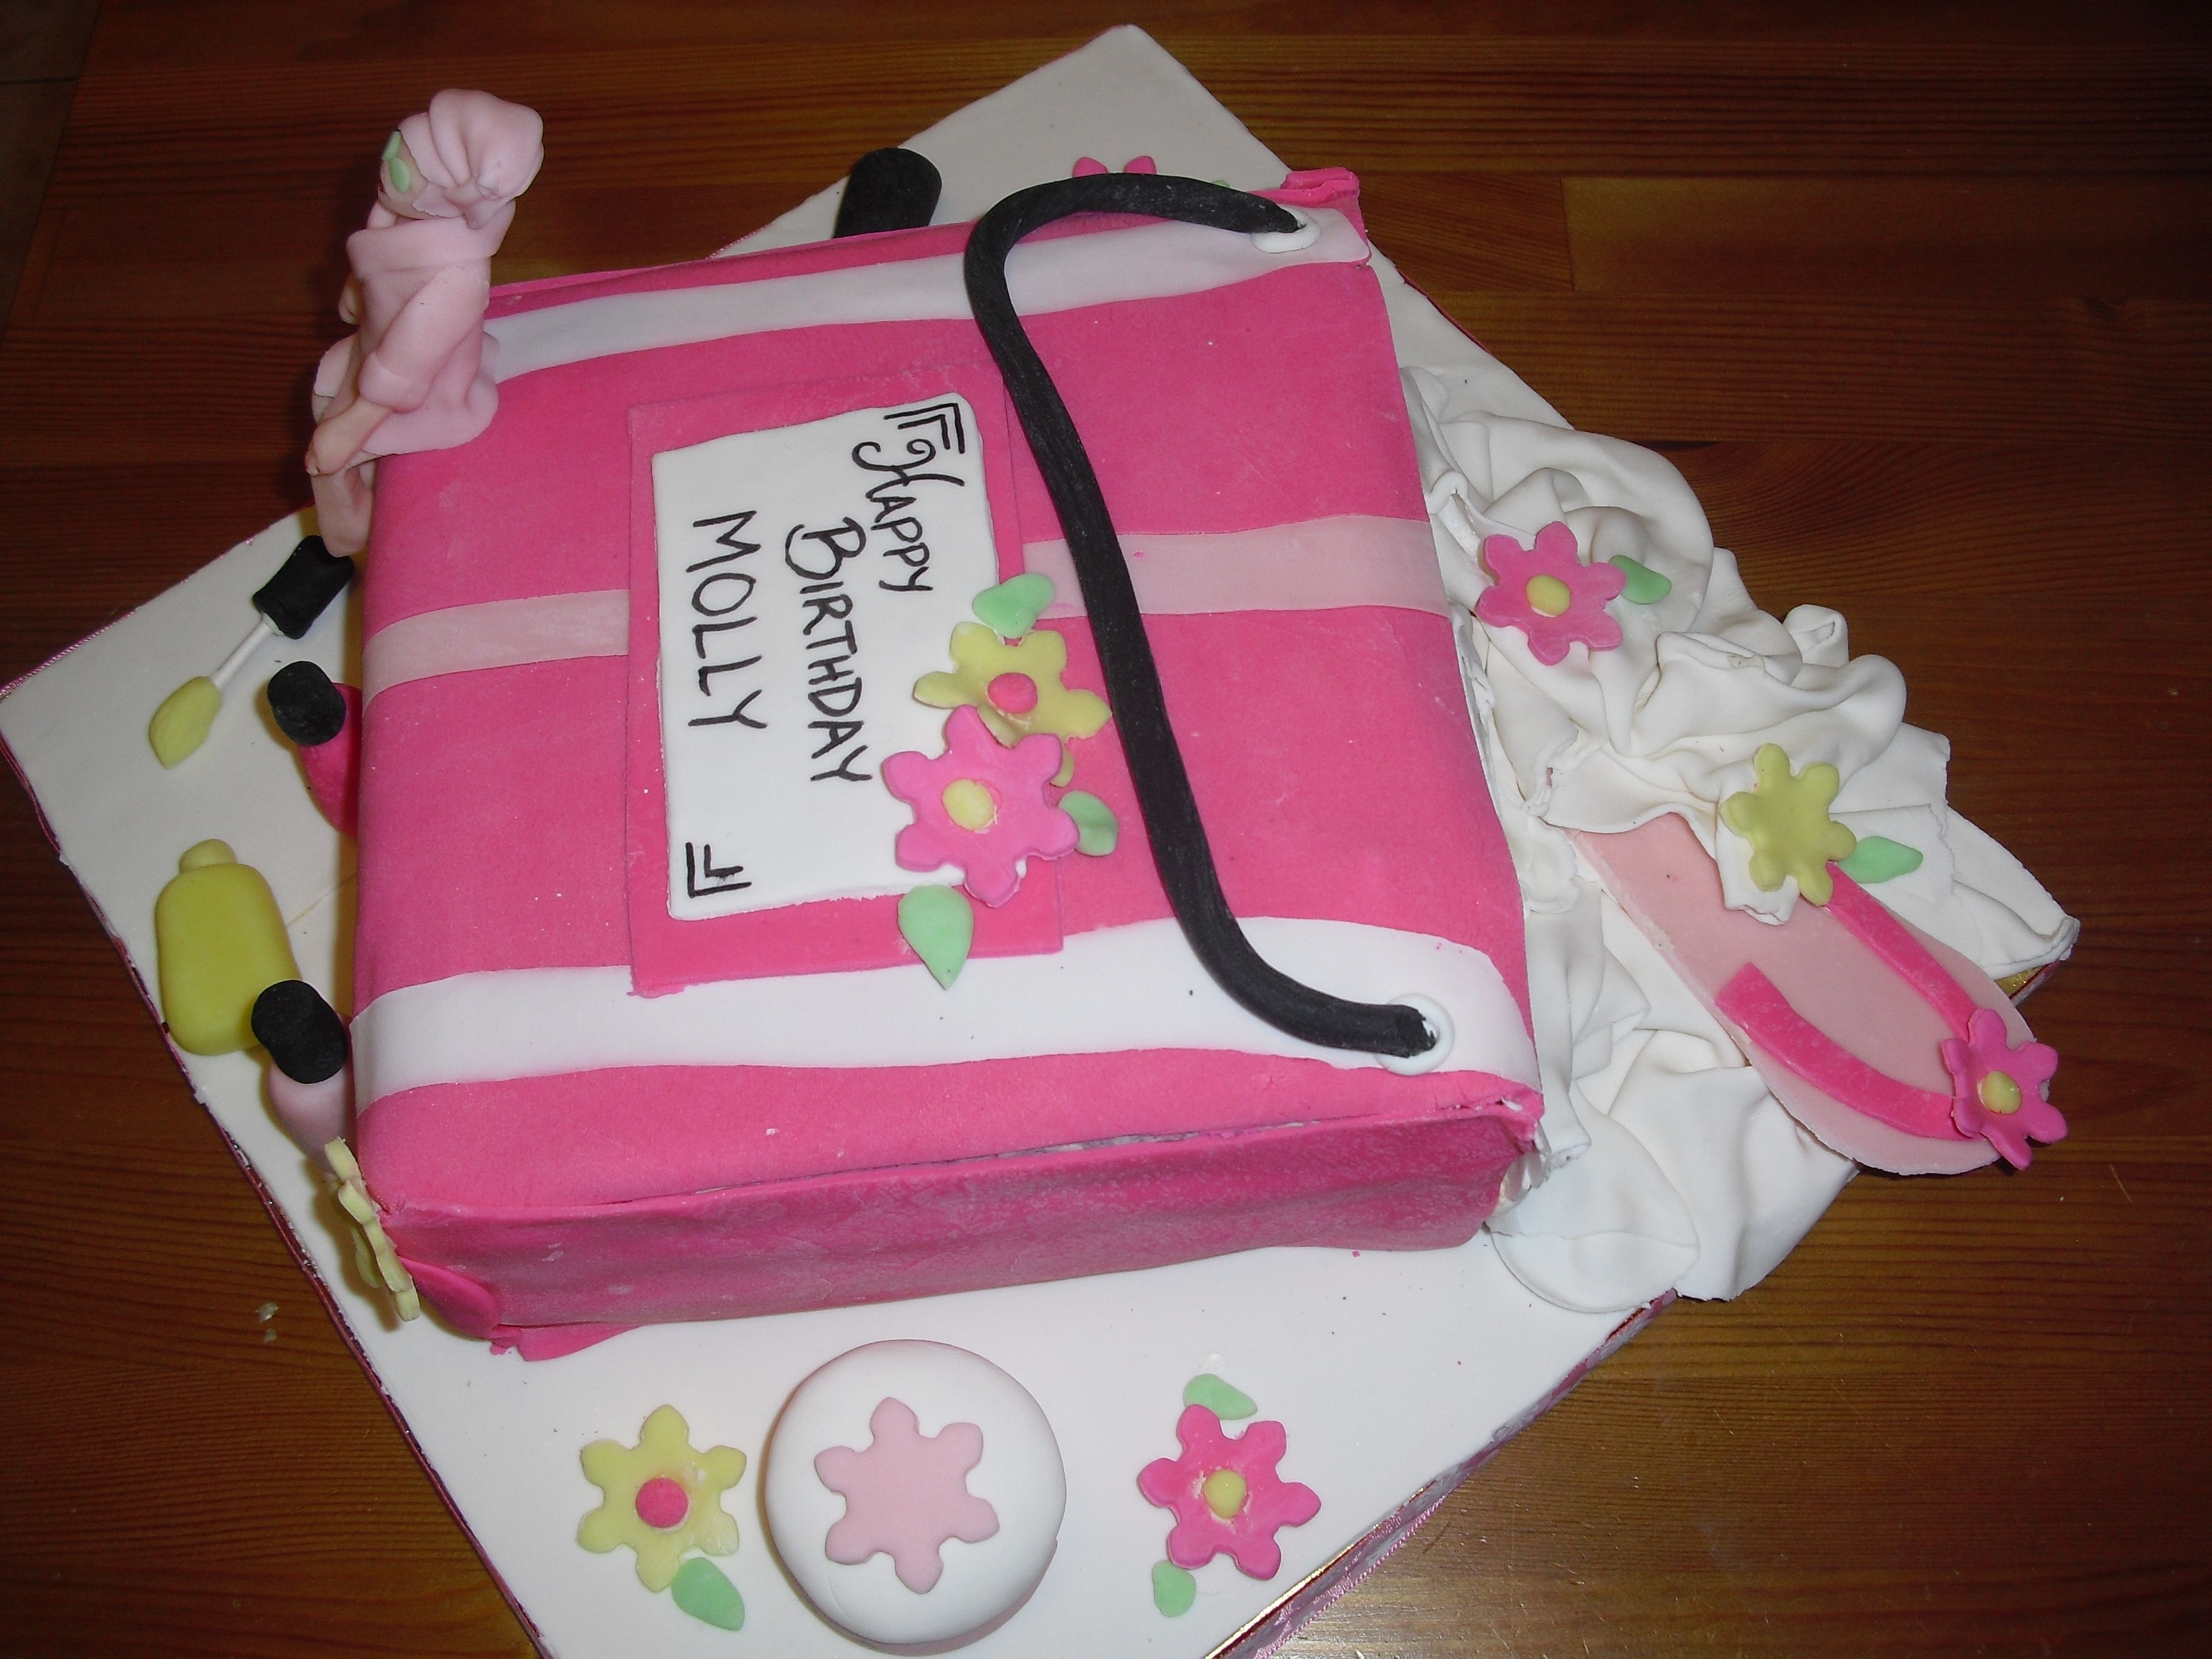 Birthday Cakes For 8 Years Old Girl Spa Party Cake Lets Party Pinterest Party Spa Party And Birthday